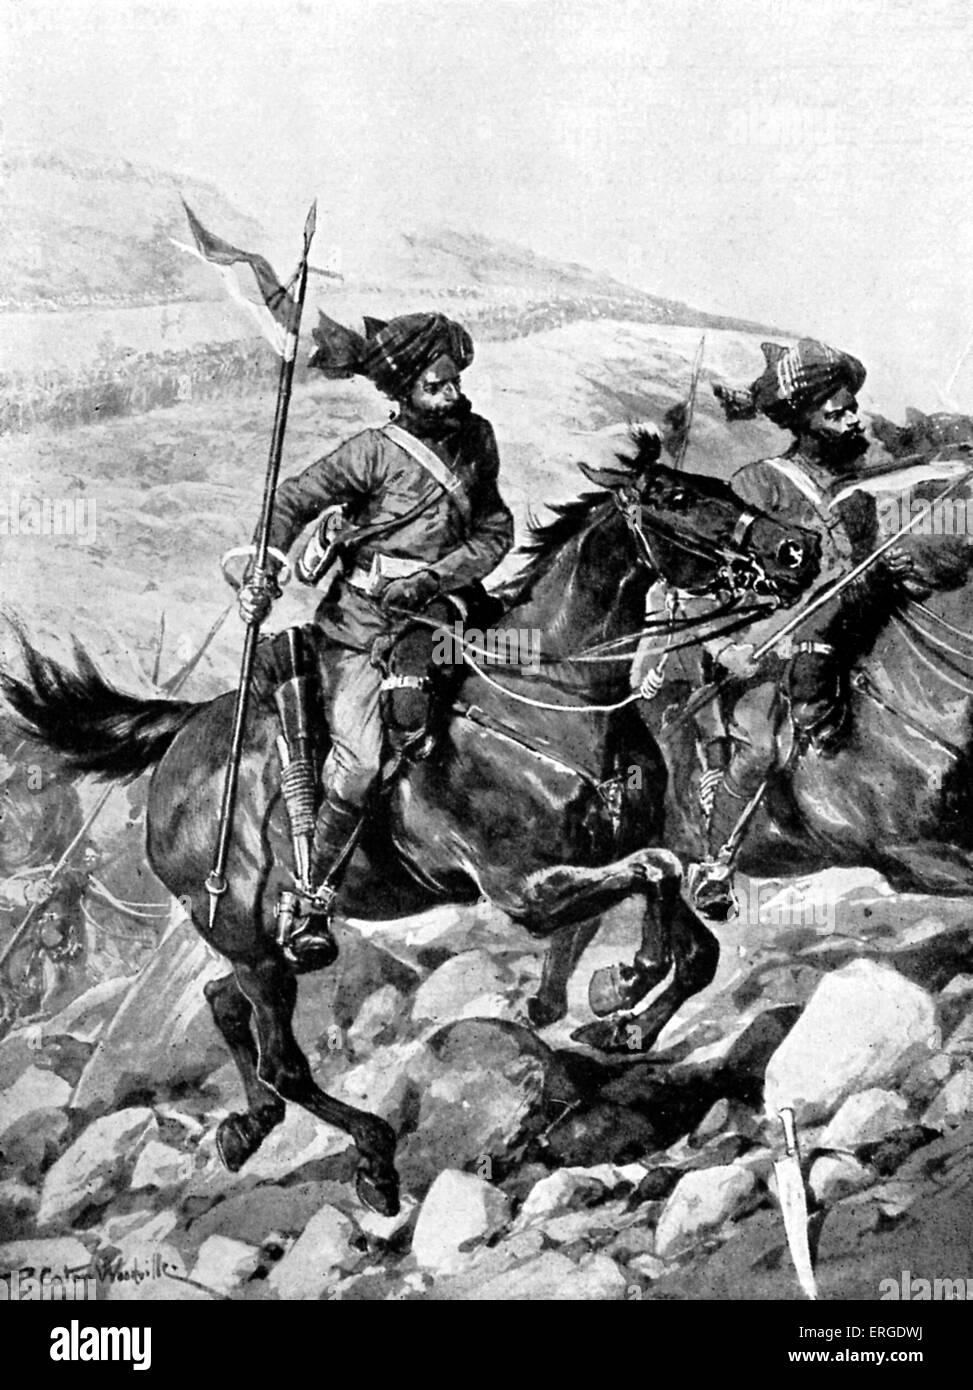 Bengal Lancers of the British India Army - during 1897 there was a series of attacks on British forces along the - Stock Image